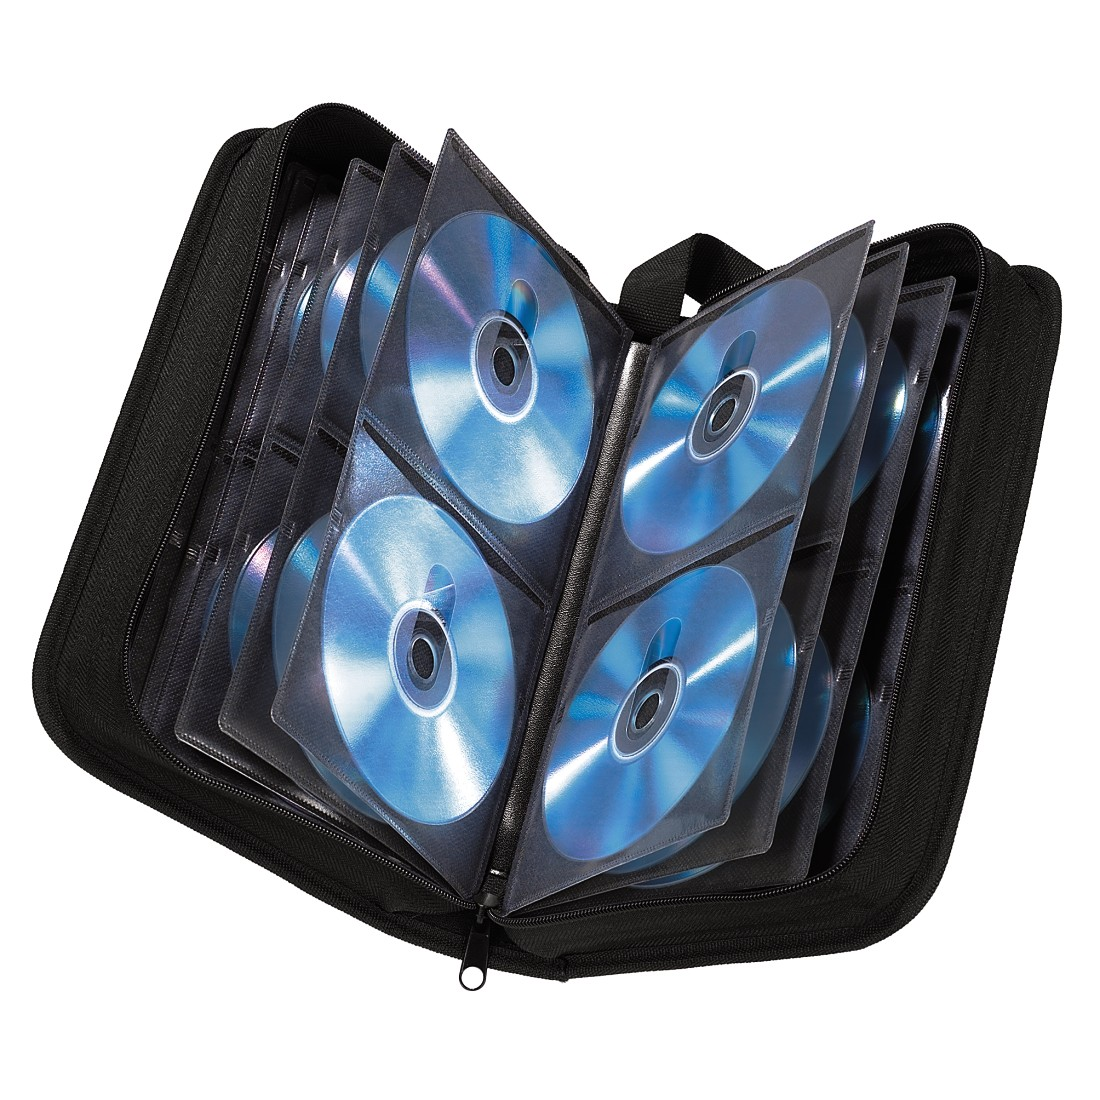 Item Cover case for 104 CD DVD Wallet HAMA